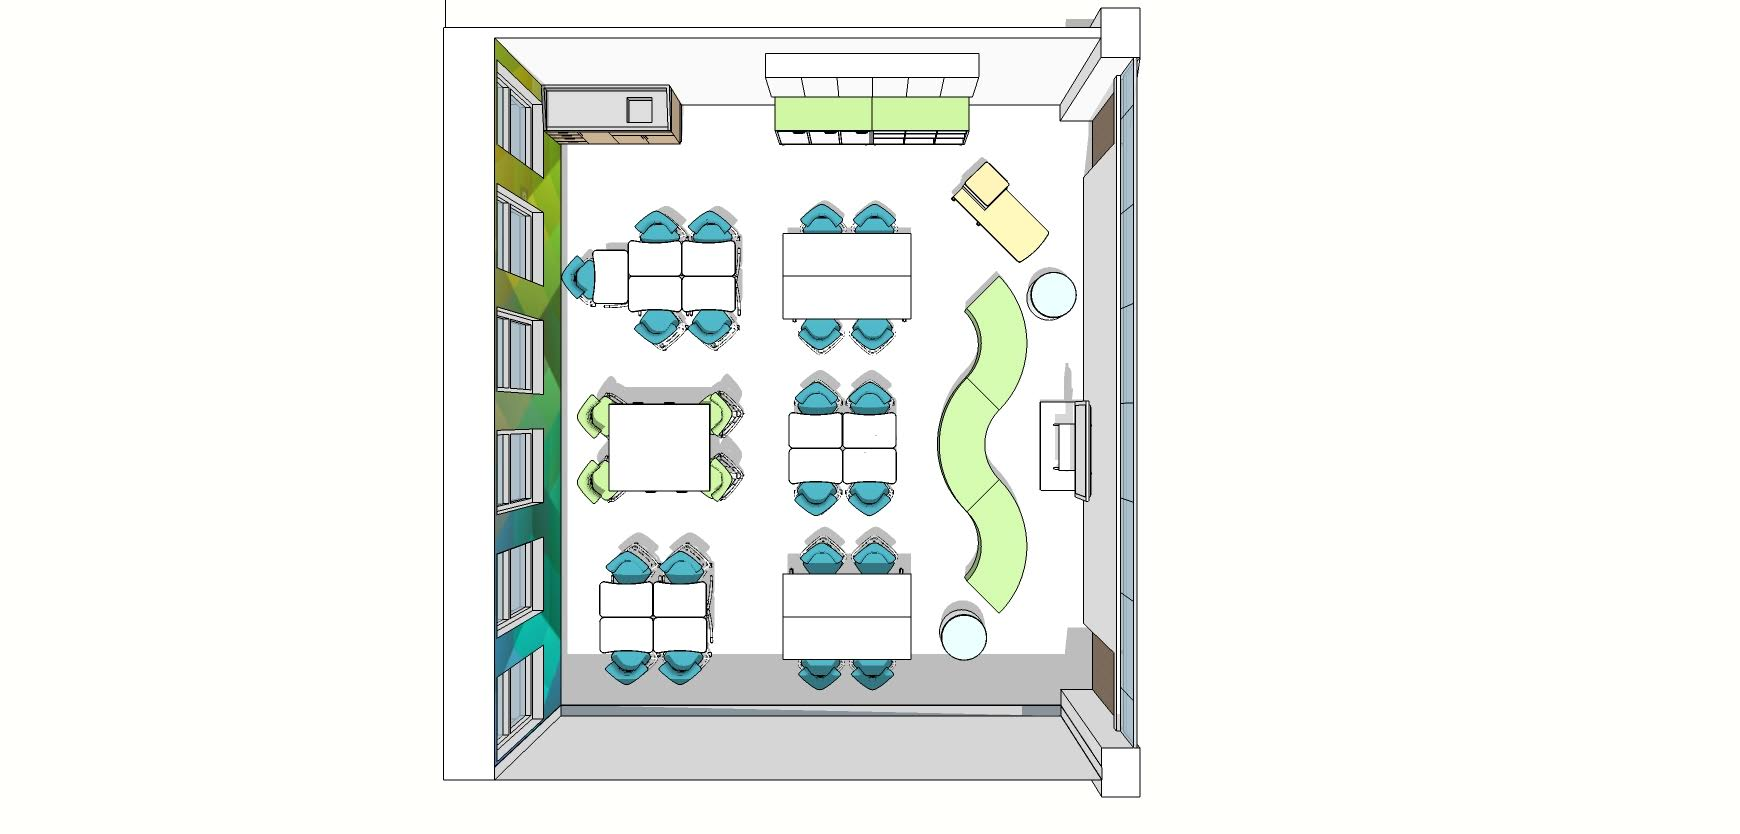 View 1- Floor Plan- cabinets added on front wall.jpg